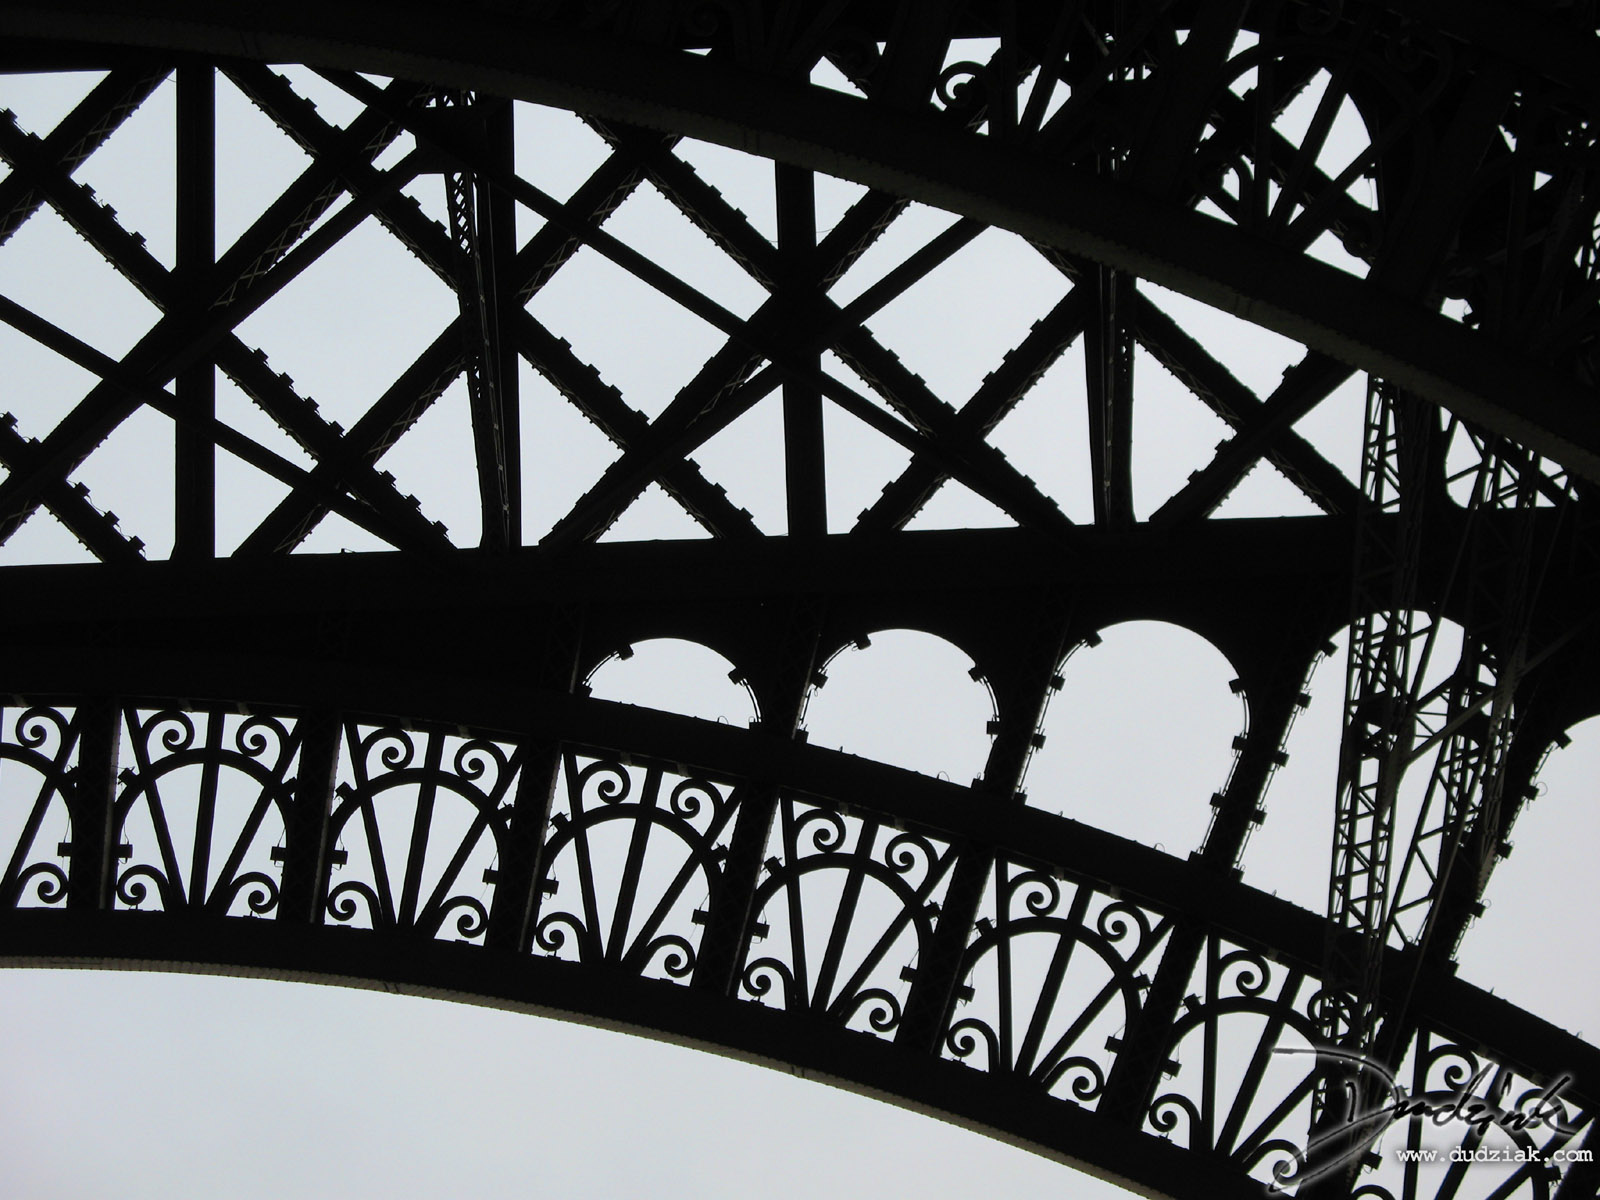 Metalwork,  Steel,  Eiffel Tower,  Paris